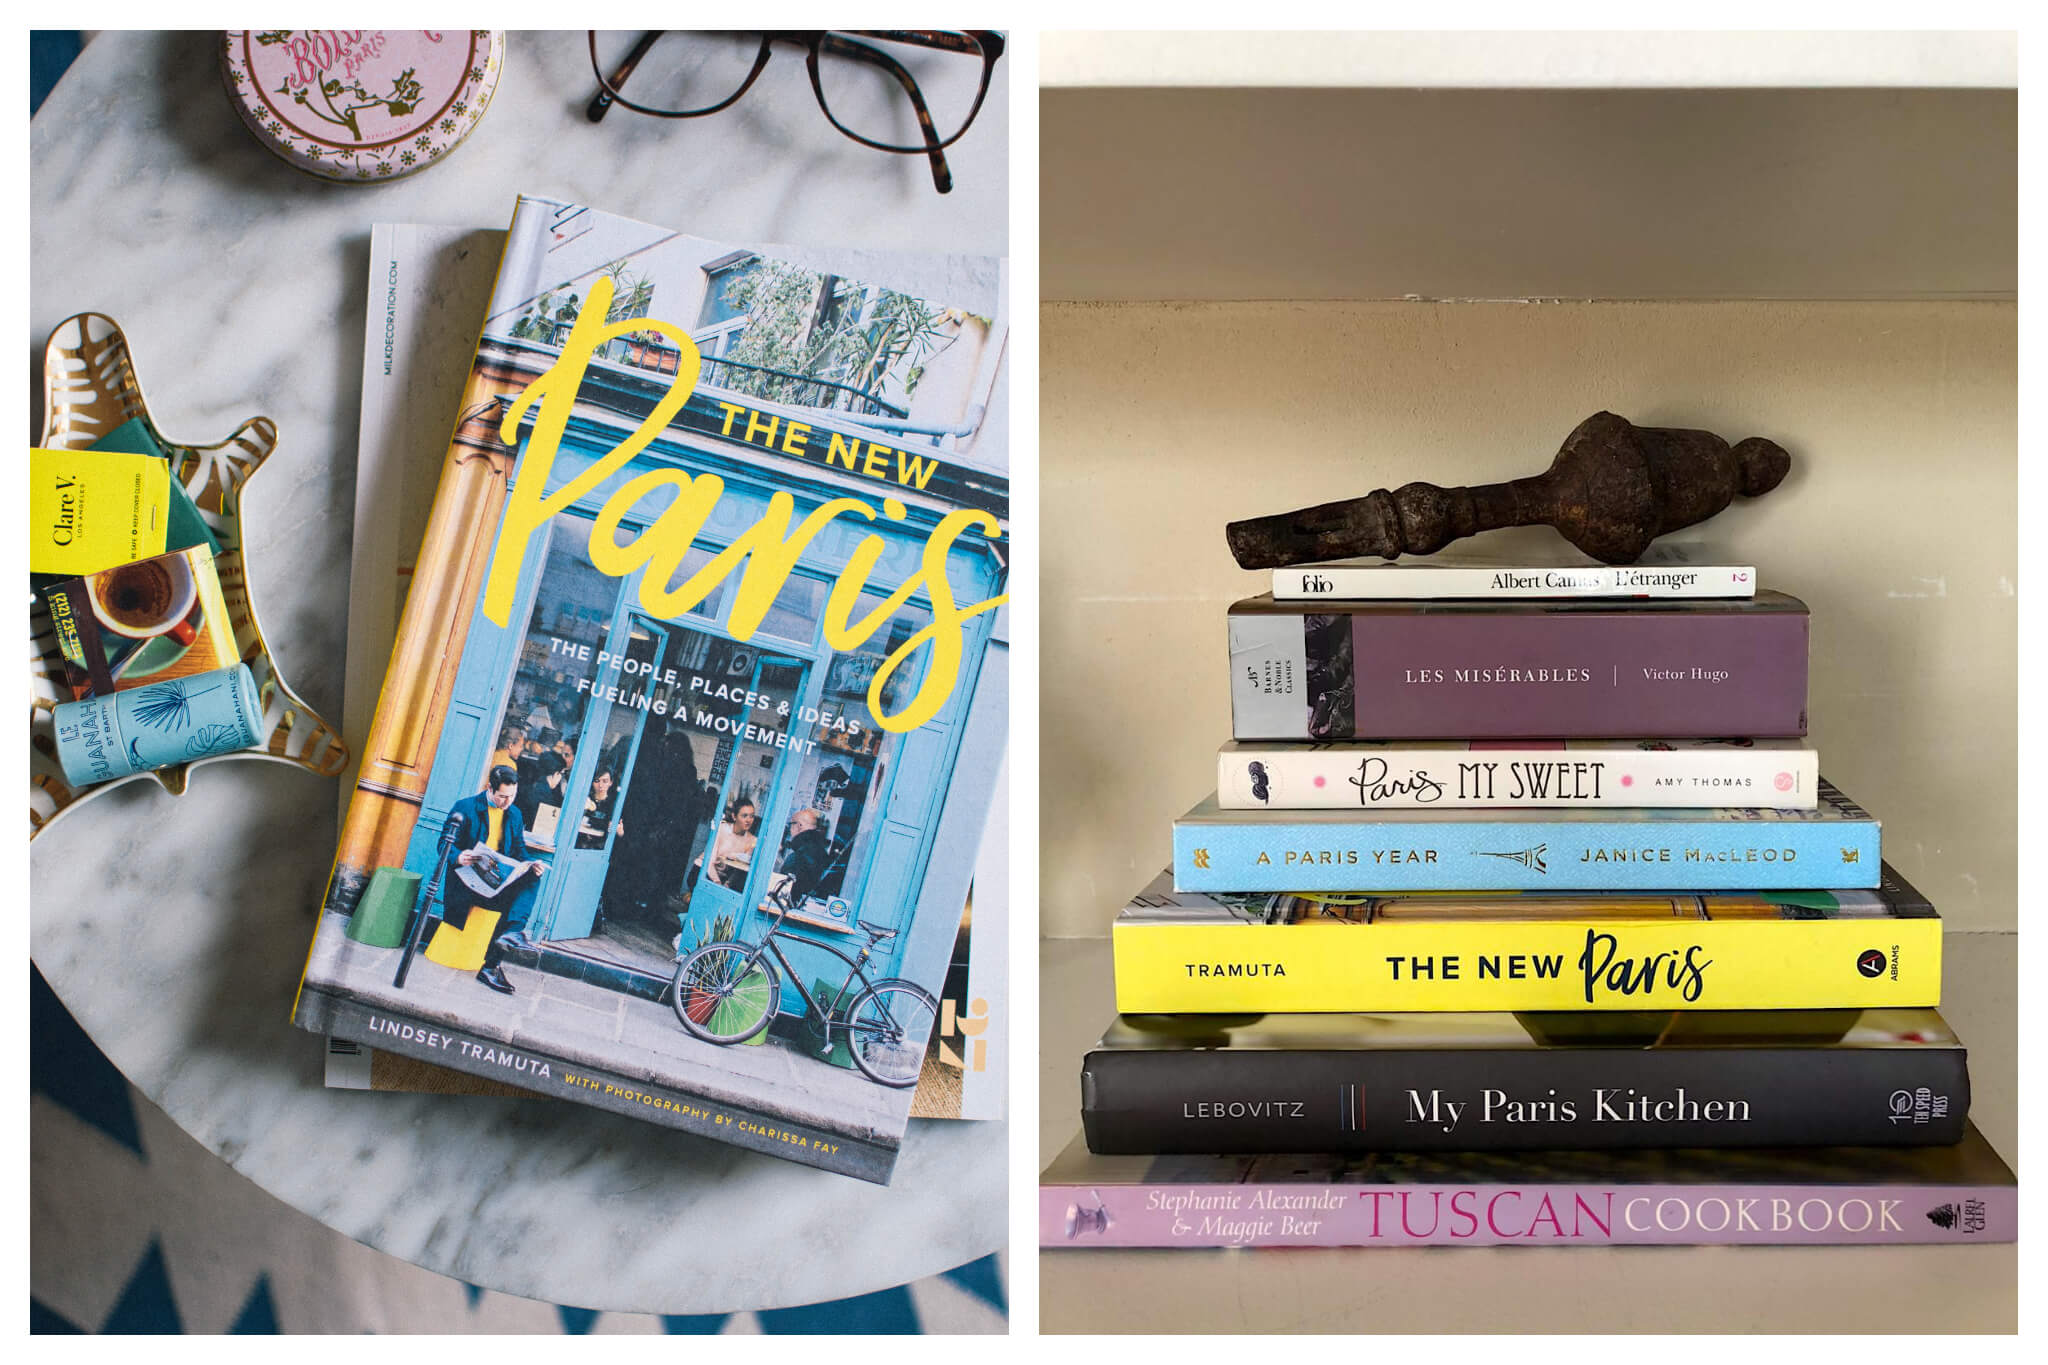 """Left: A book, """"The New Paris"""" by Lindsey Tramuta, sits atop a marble table, Right: A stack of books on a shelf, including books like """"My Paris Kitchen,"""" """"The New Paris,"""" and """"Paris My Sweet"""""""